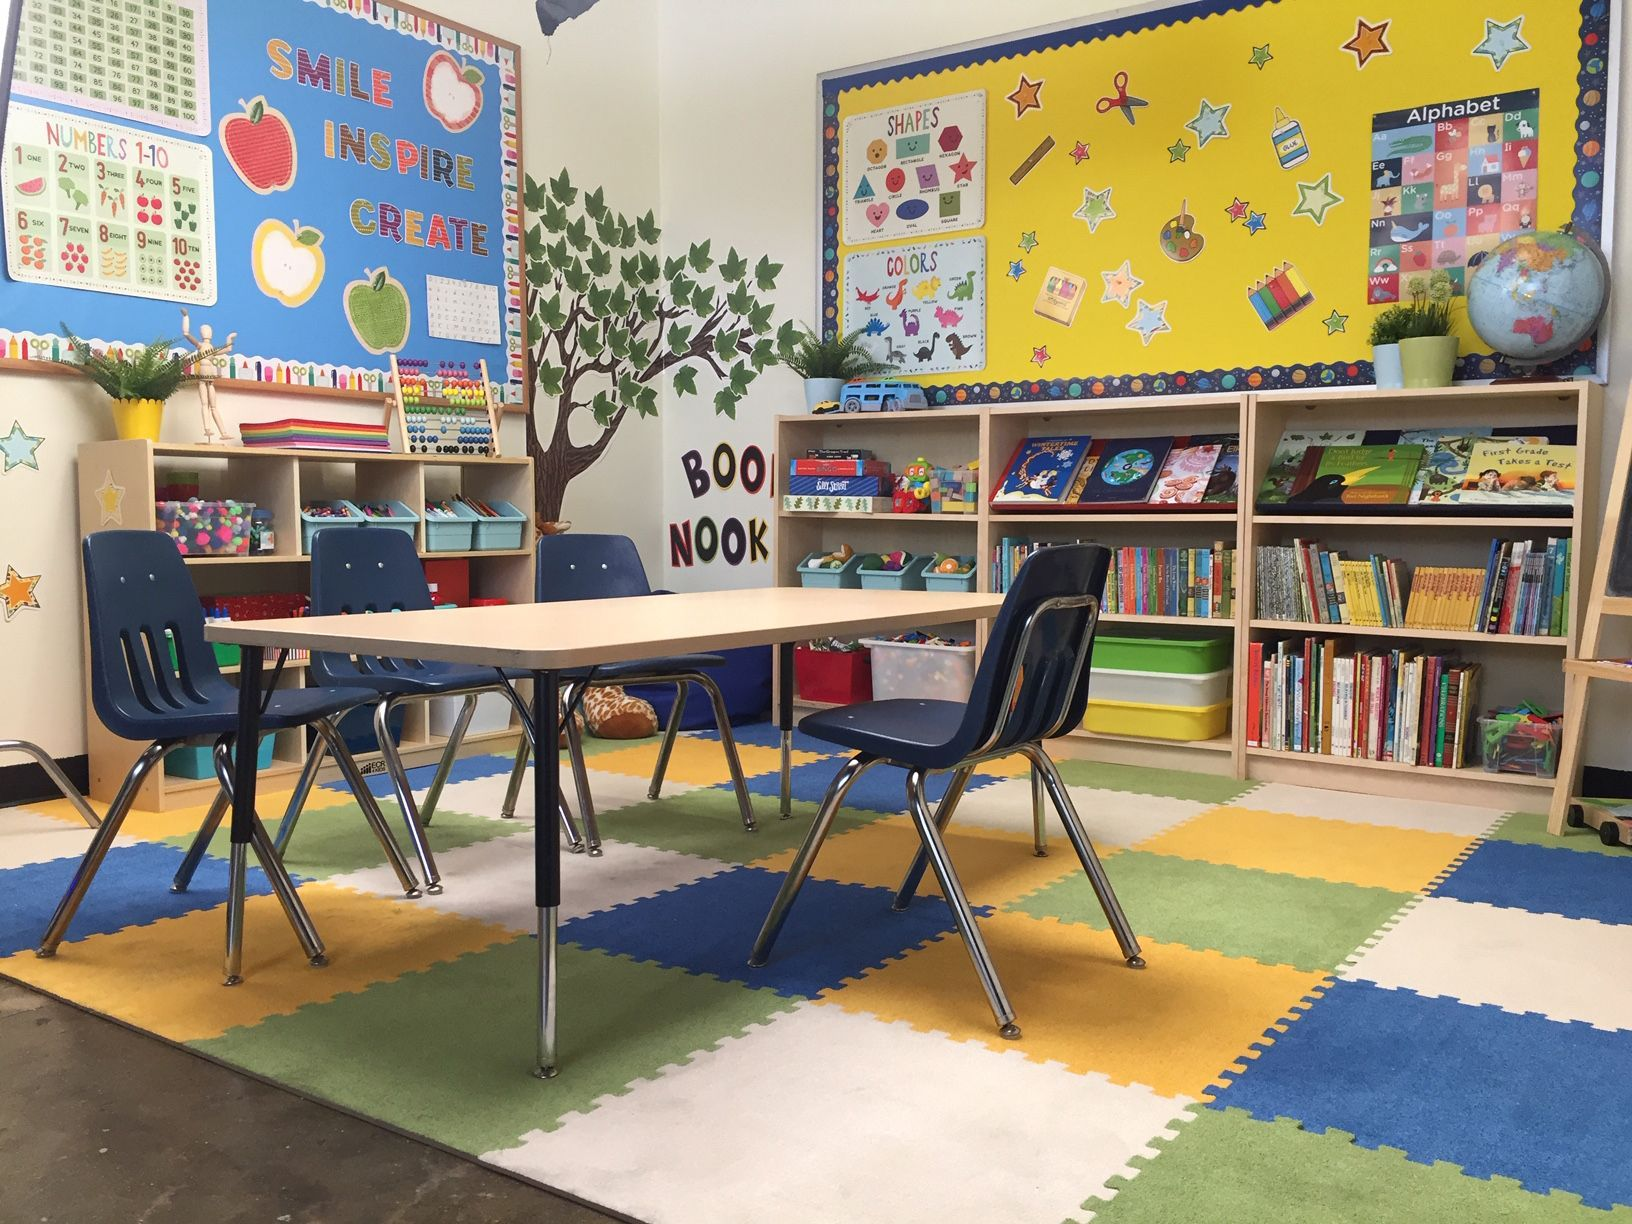 Good Free of Charge Carpet Tiles classroom Ideas Commercial flooring options are many, but there is